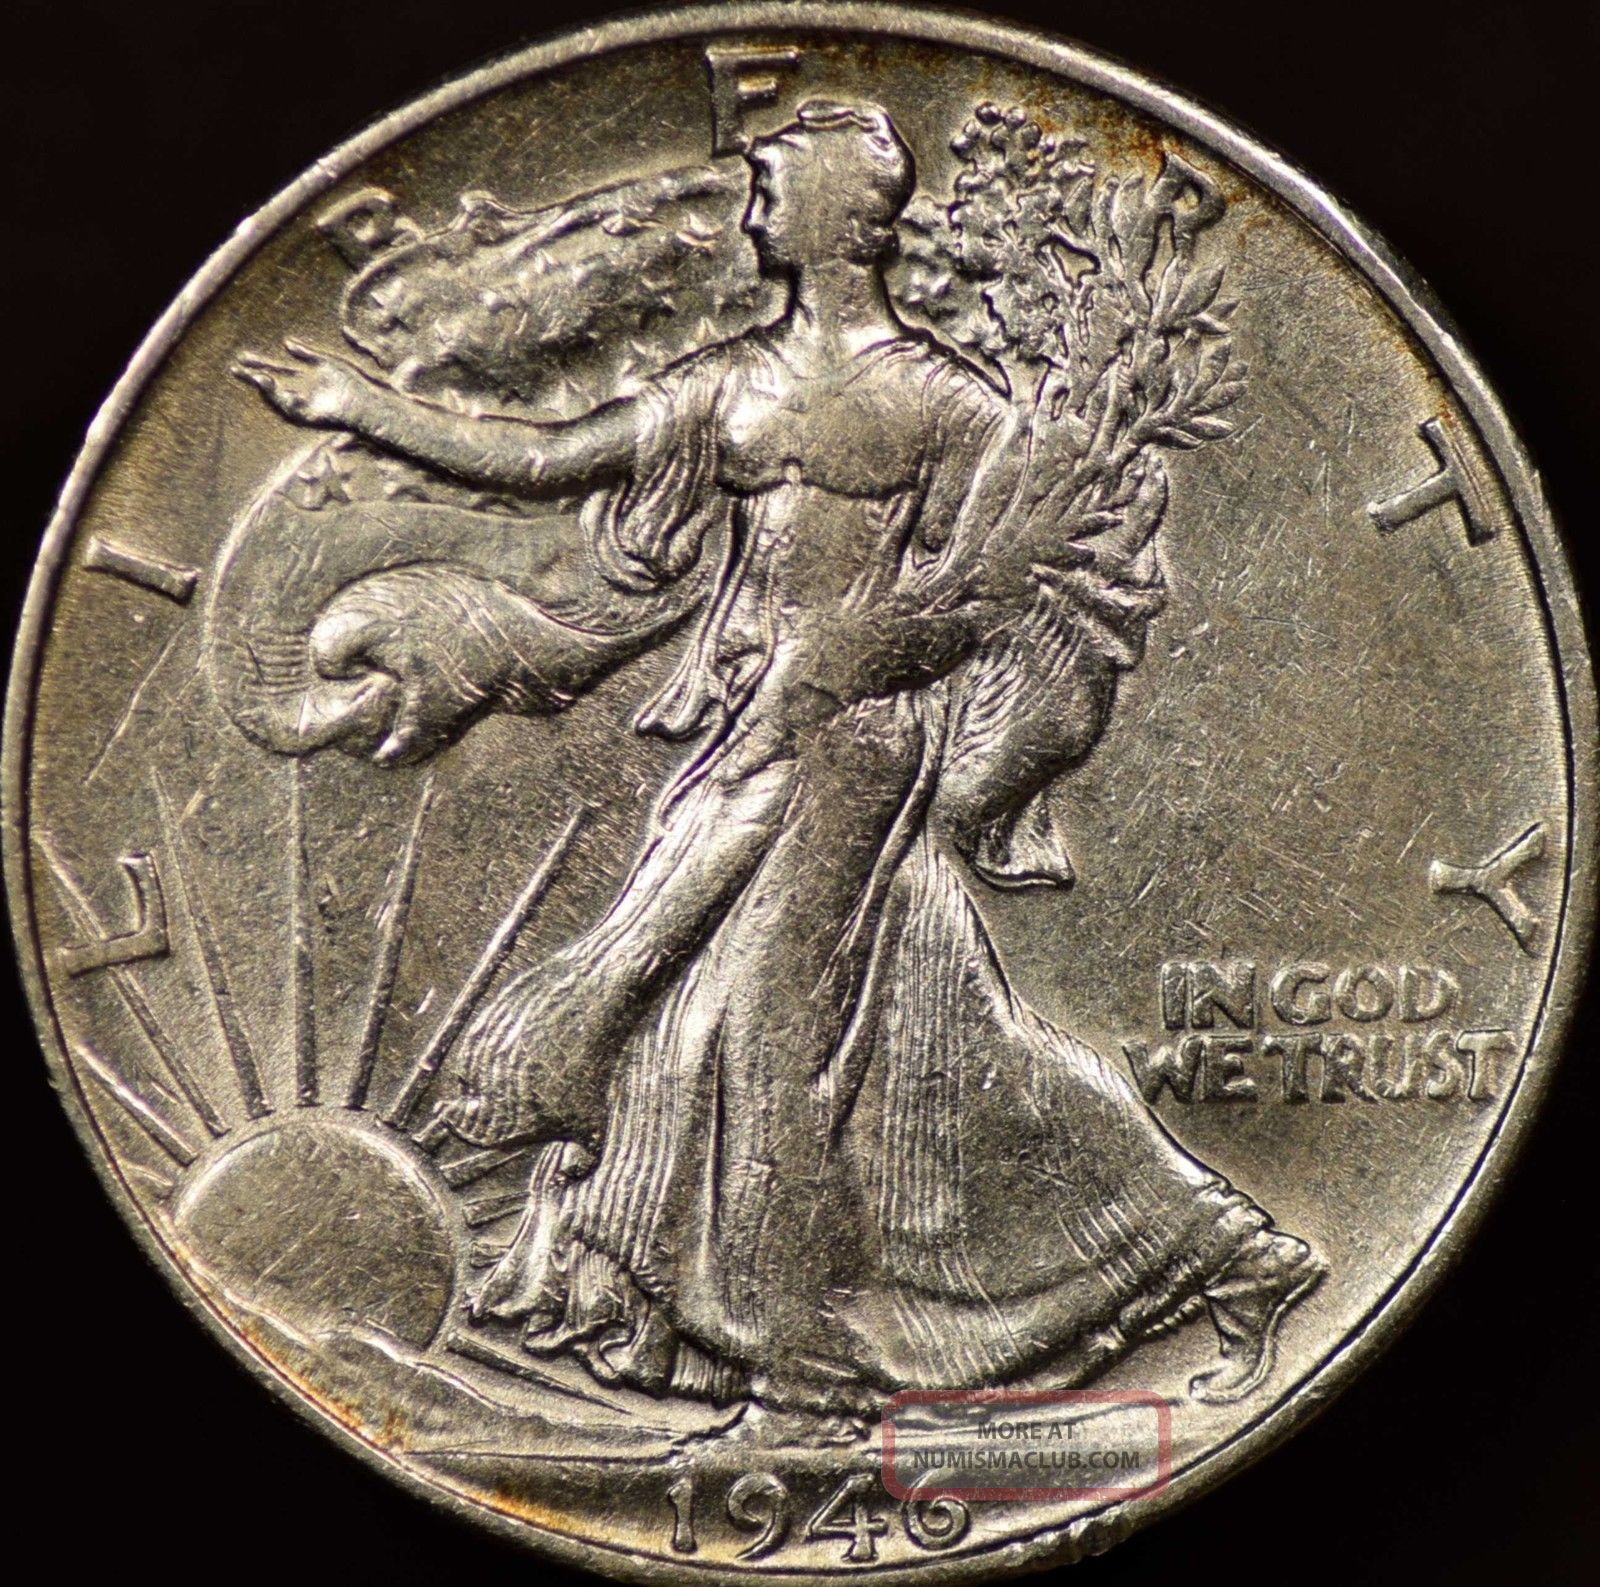 1946s Walking Liberty Half Dollar Almost Uncirculated Liberty Walking (1916-47) photo